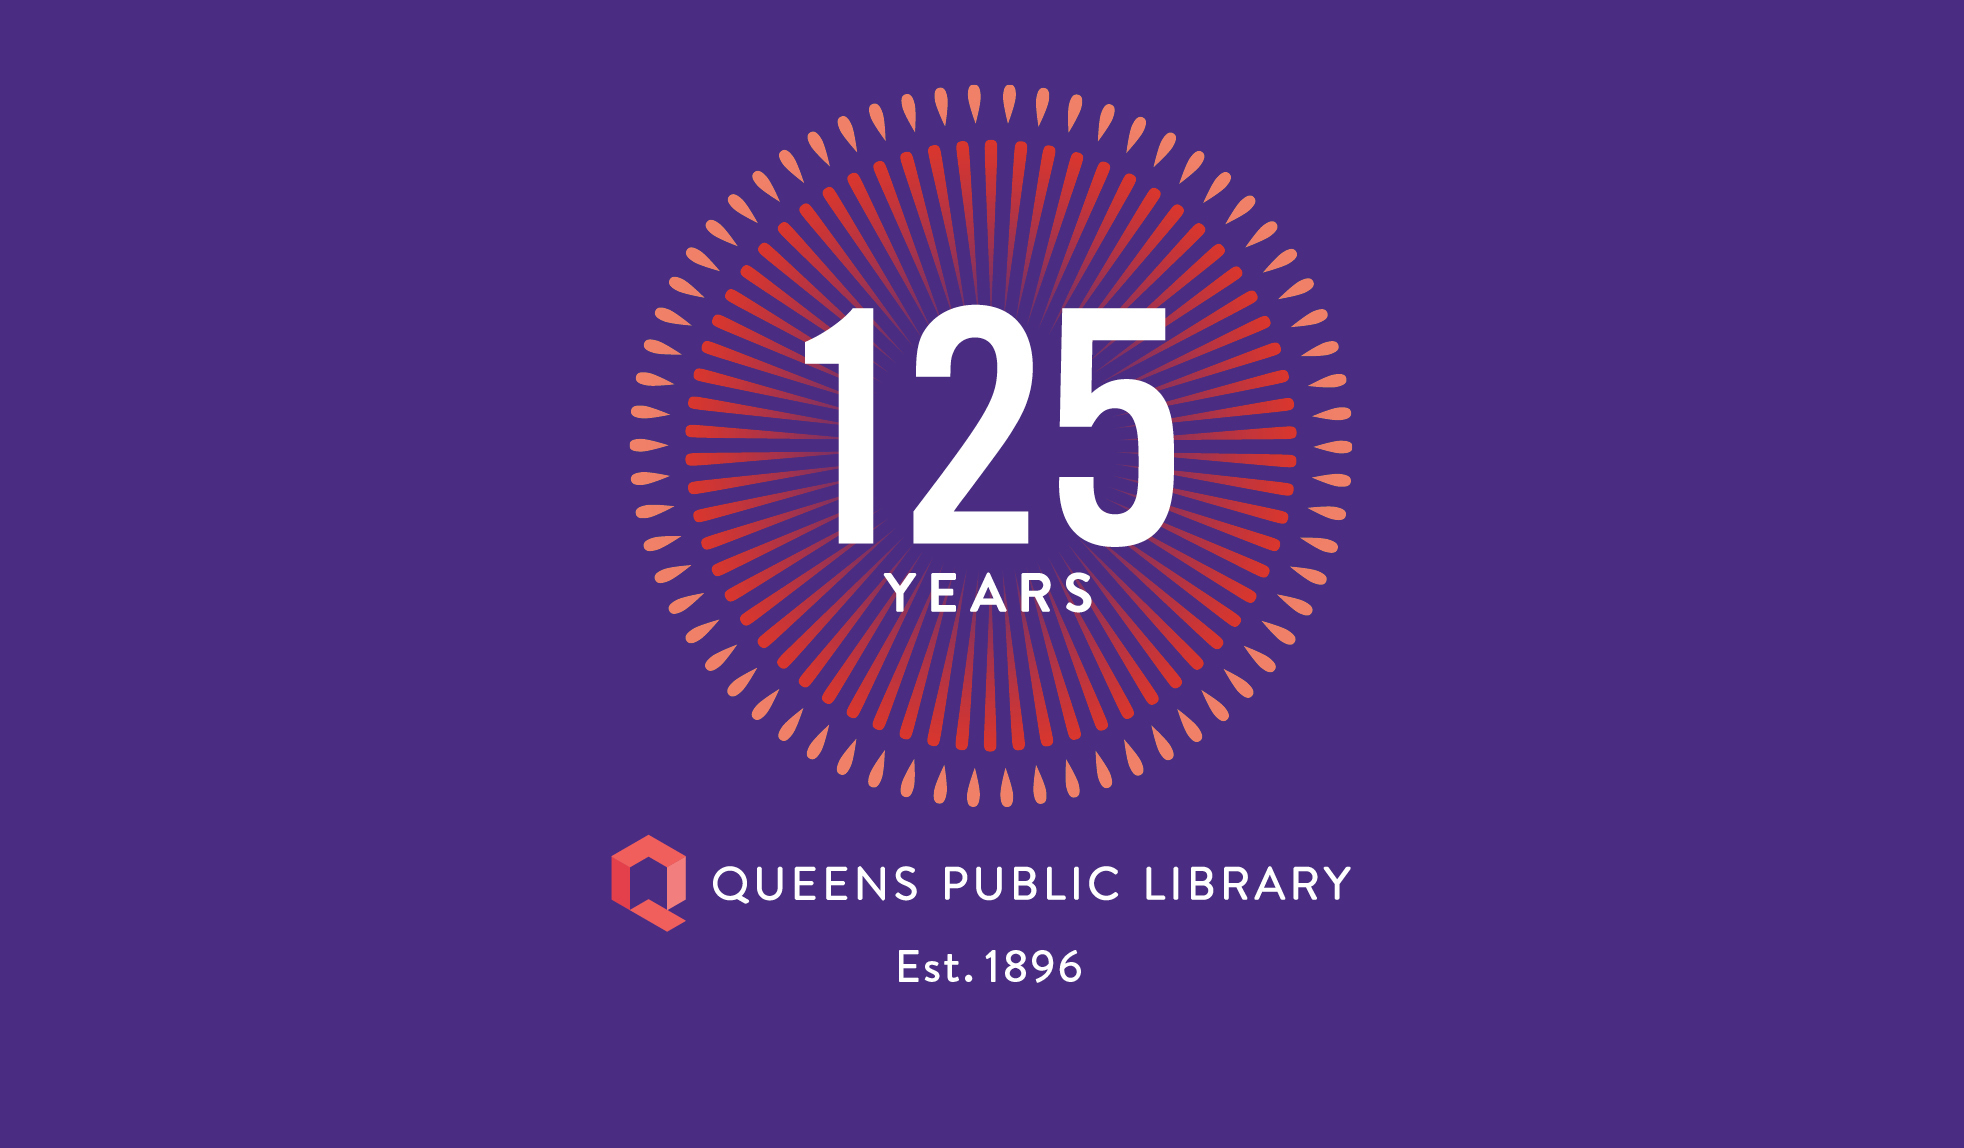 Share your QPL stories, explore our Love Letters to Queens, and more.